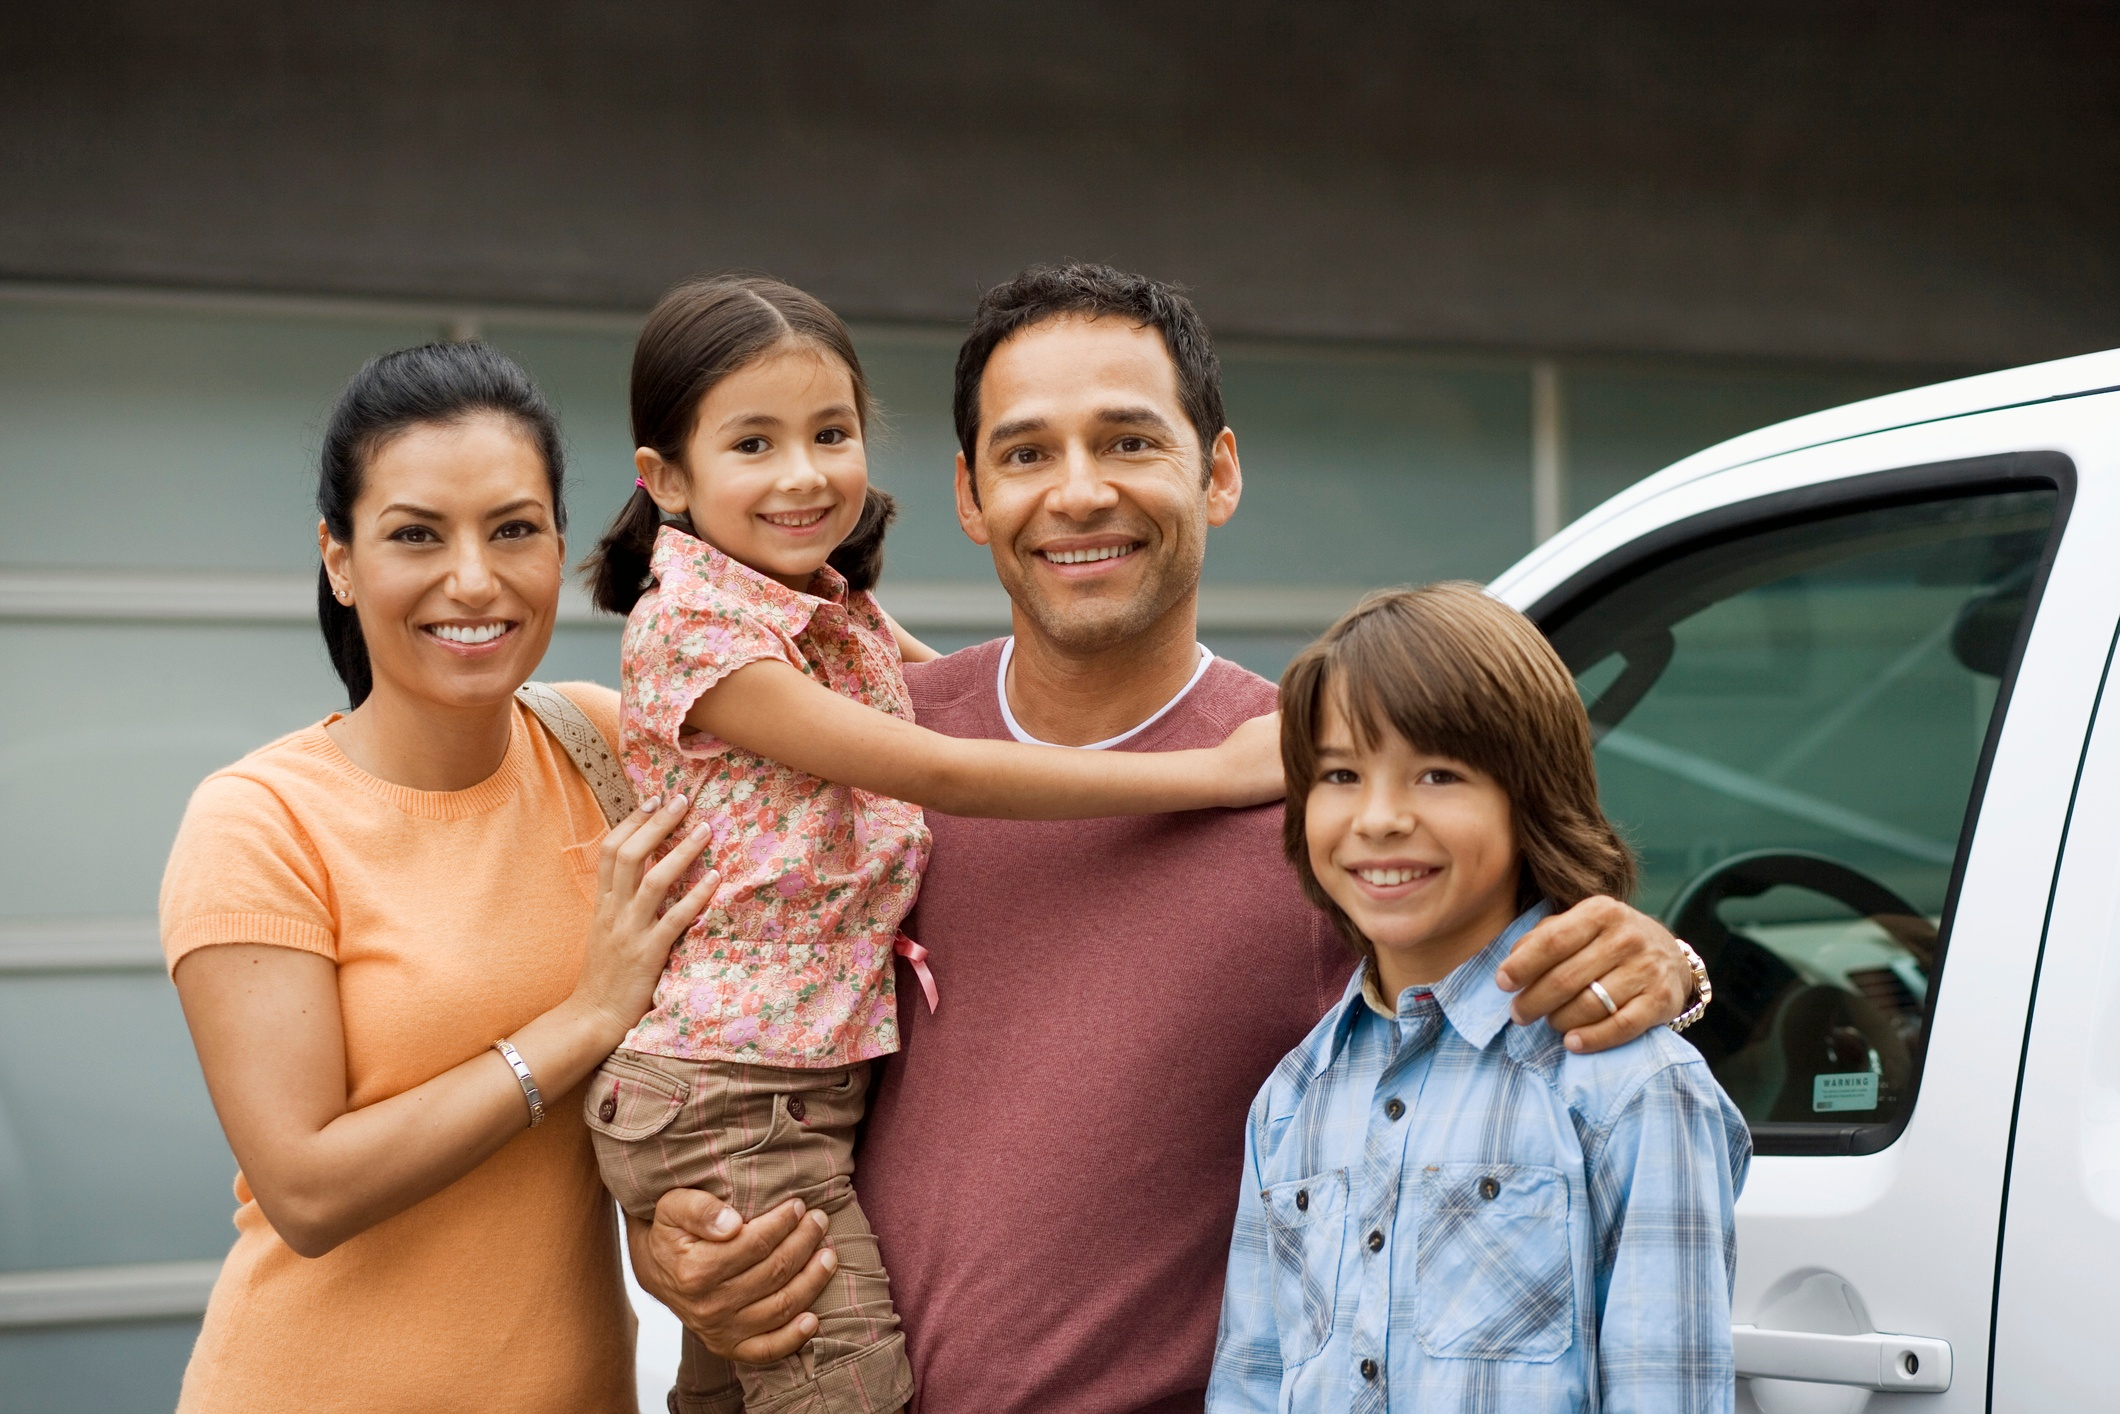 ThinkstockPhotos-200488800-001 Family standing outside house next to car